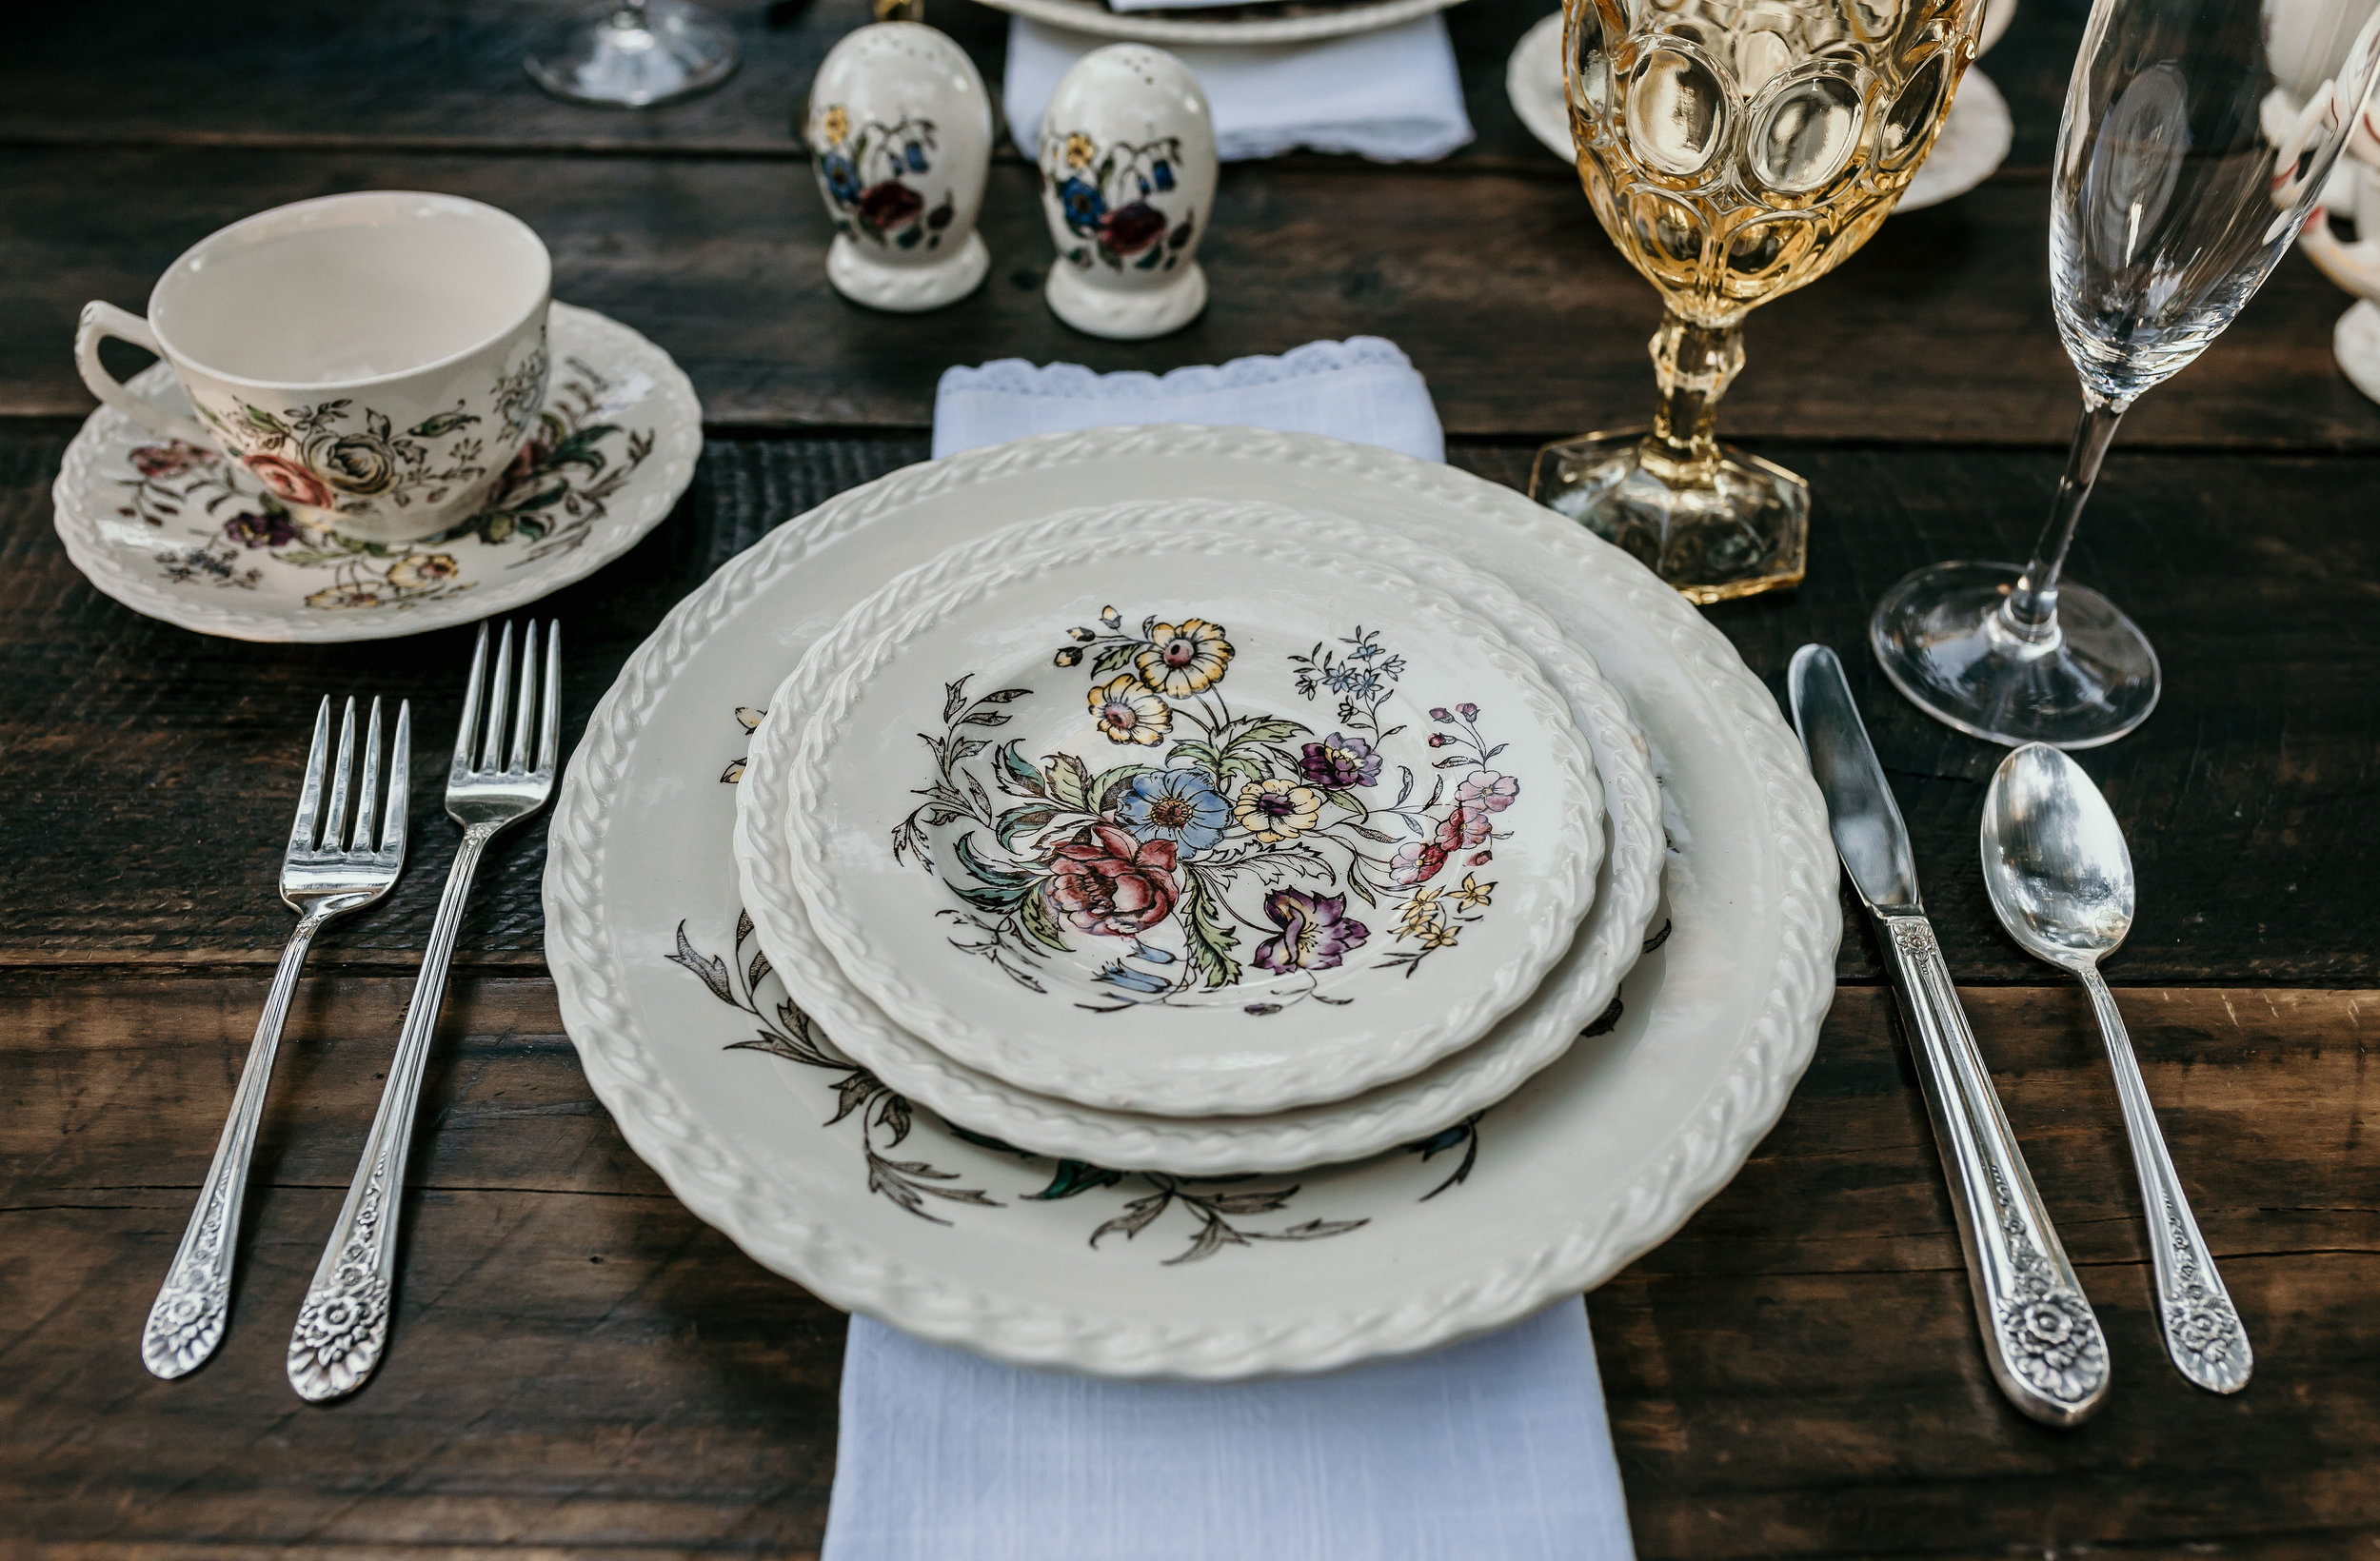 Vintage Johnson Brothers china set on a farm table with vintage goblets and silverware. This was used in the Alice in Wonderland styled shoot at Chateau Adare in Murrieta.